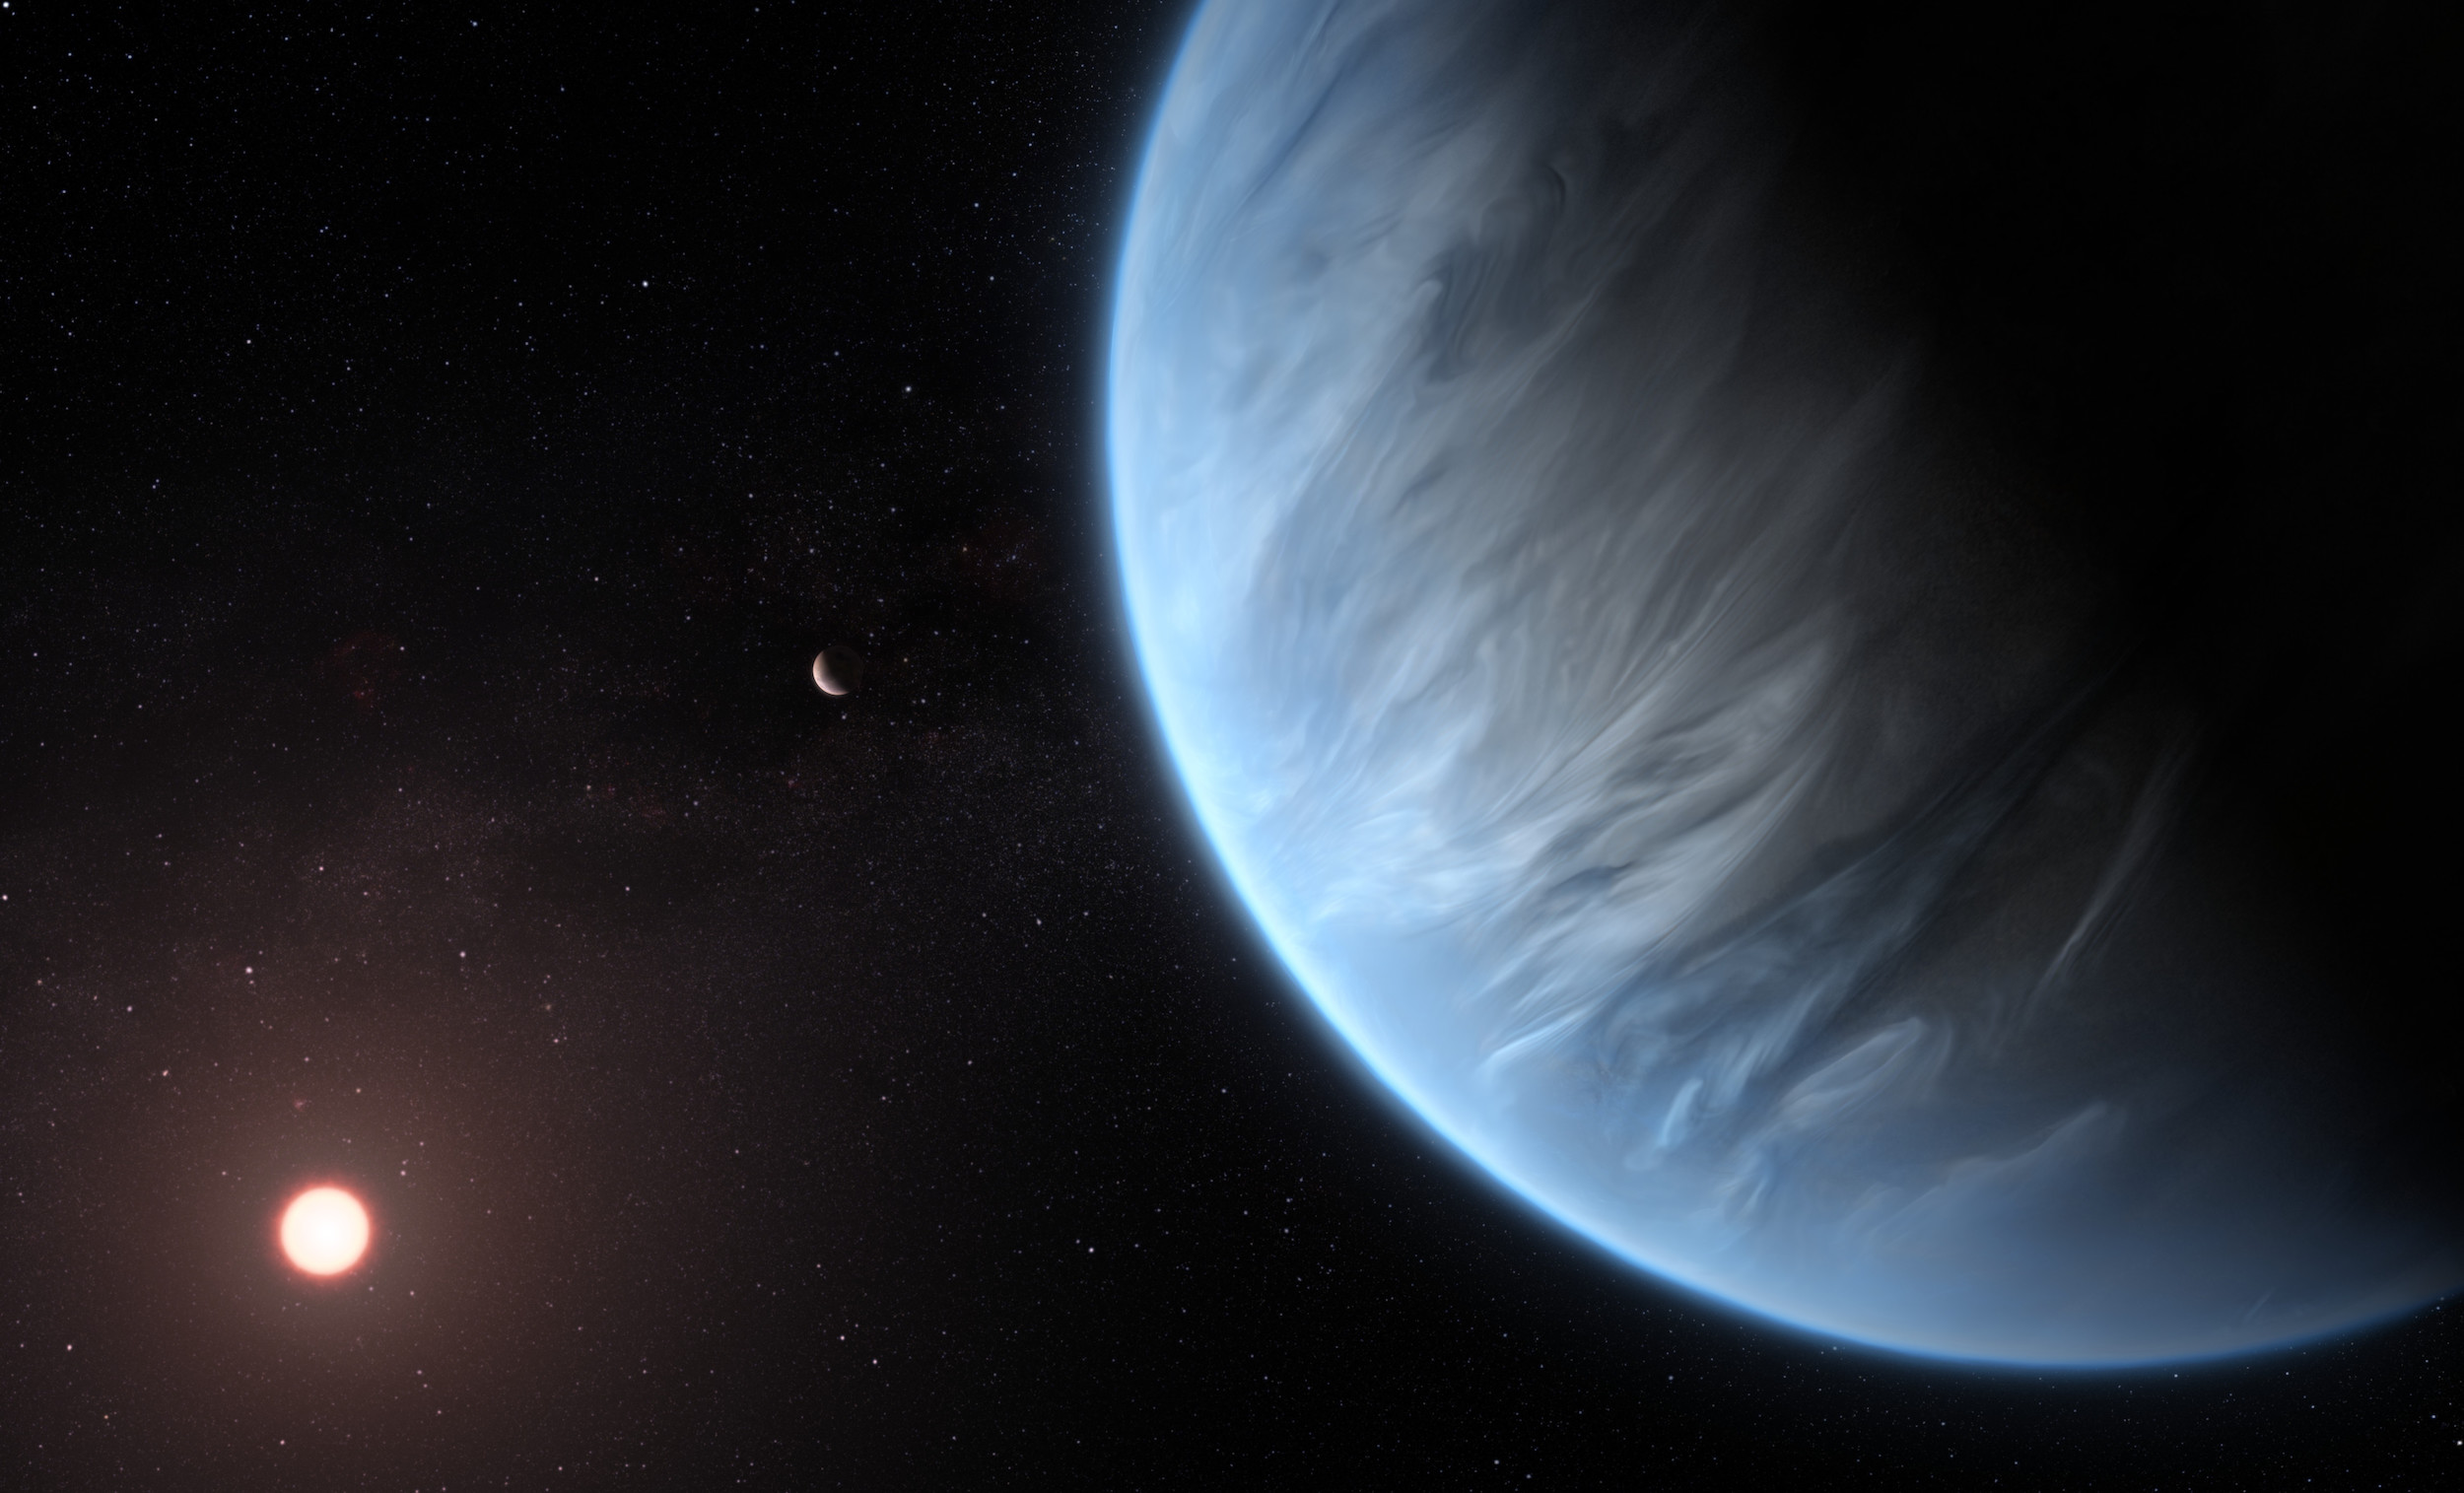 Hubble spots liquid water on a 'super-Earth' 110 light-years away		 		 	Devin Coldewey  			@techcrunch	  		2 months